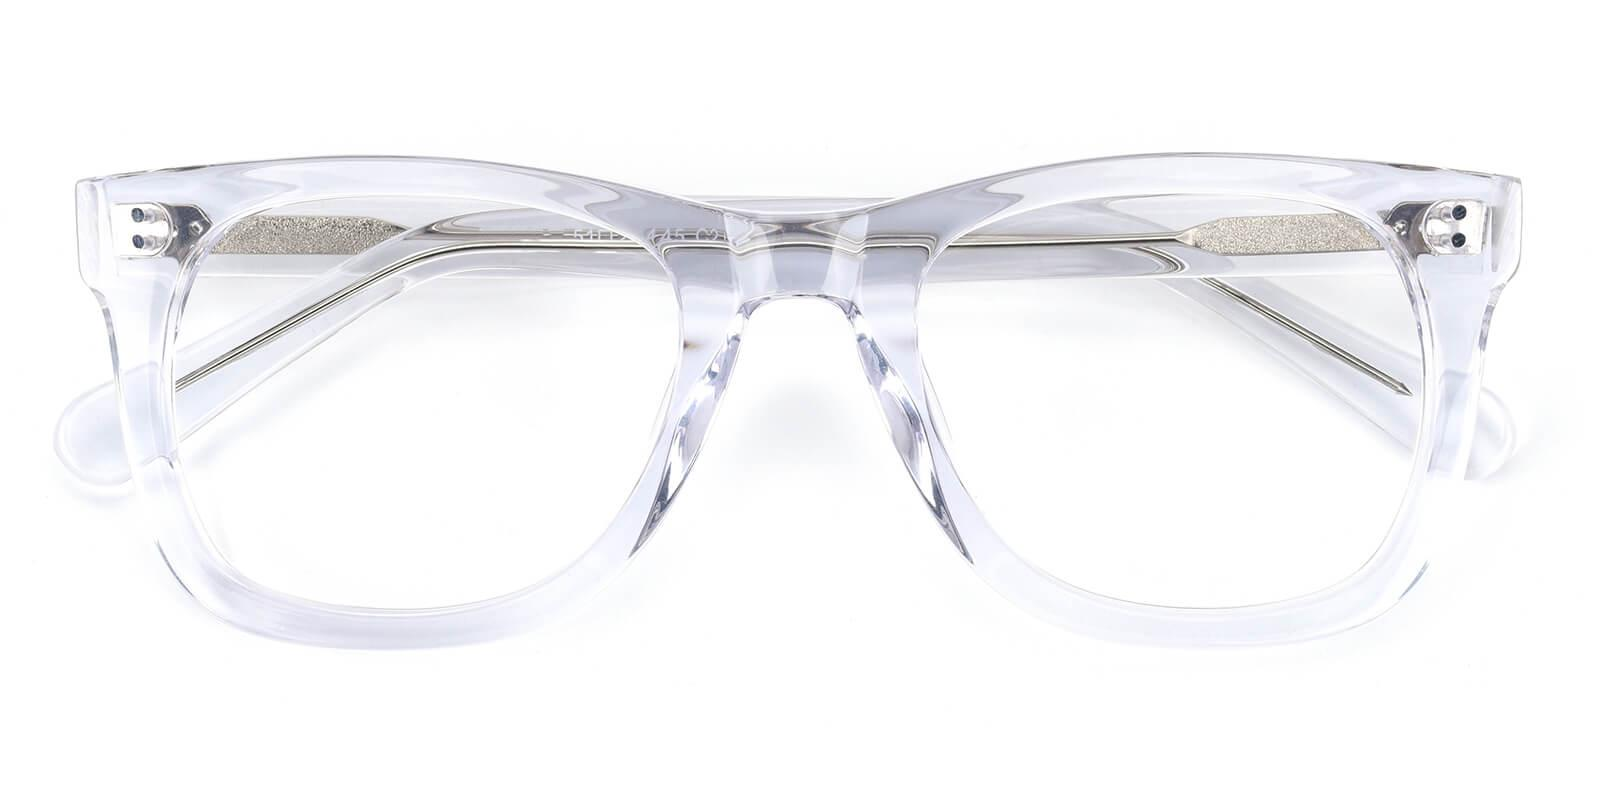 Trend-Translucent-Square-Acetate-Eyeglasses-detail